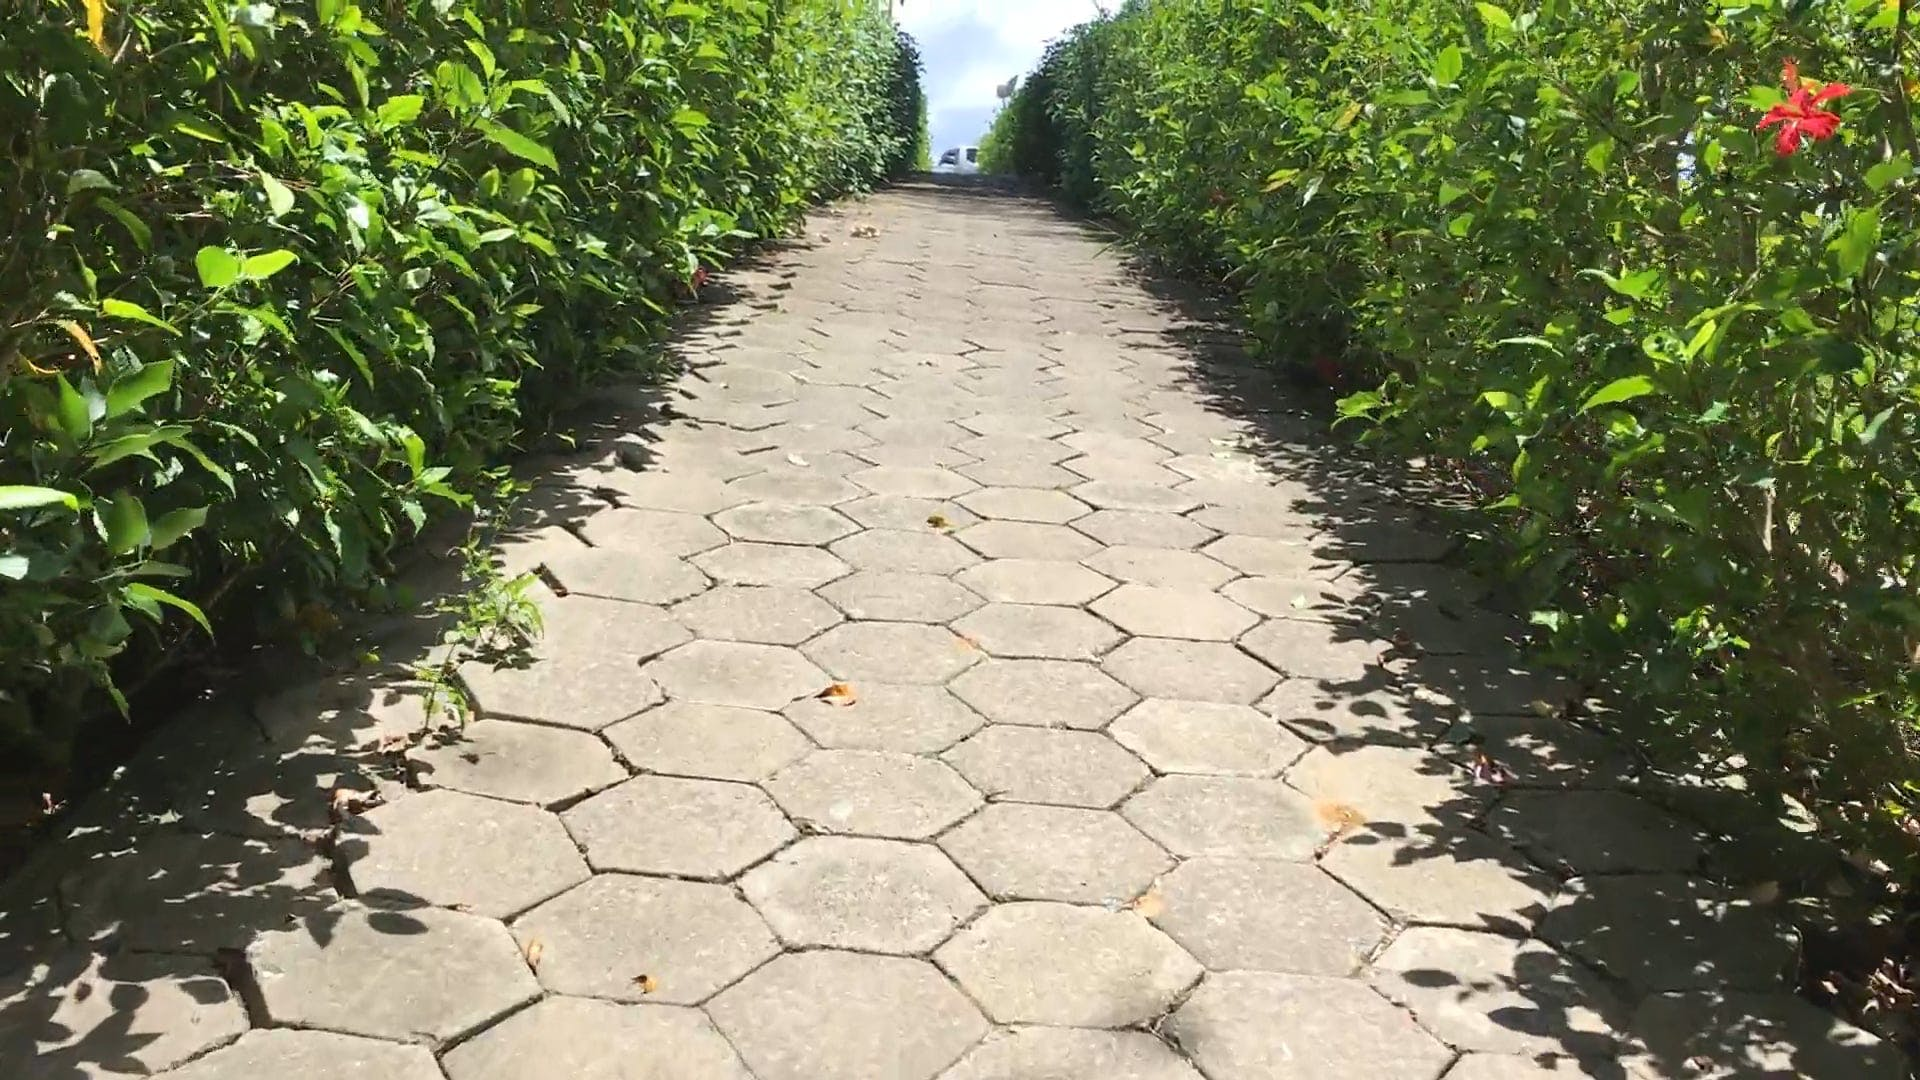 Paved Pathway With Plants On The Side